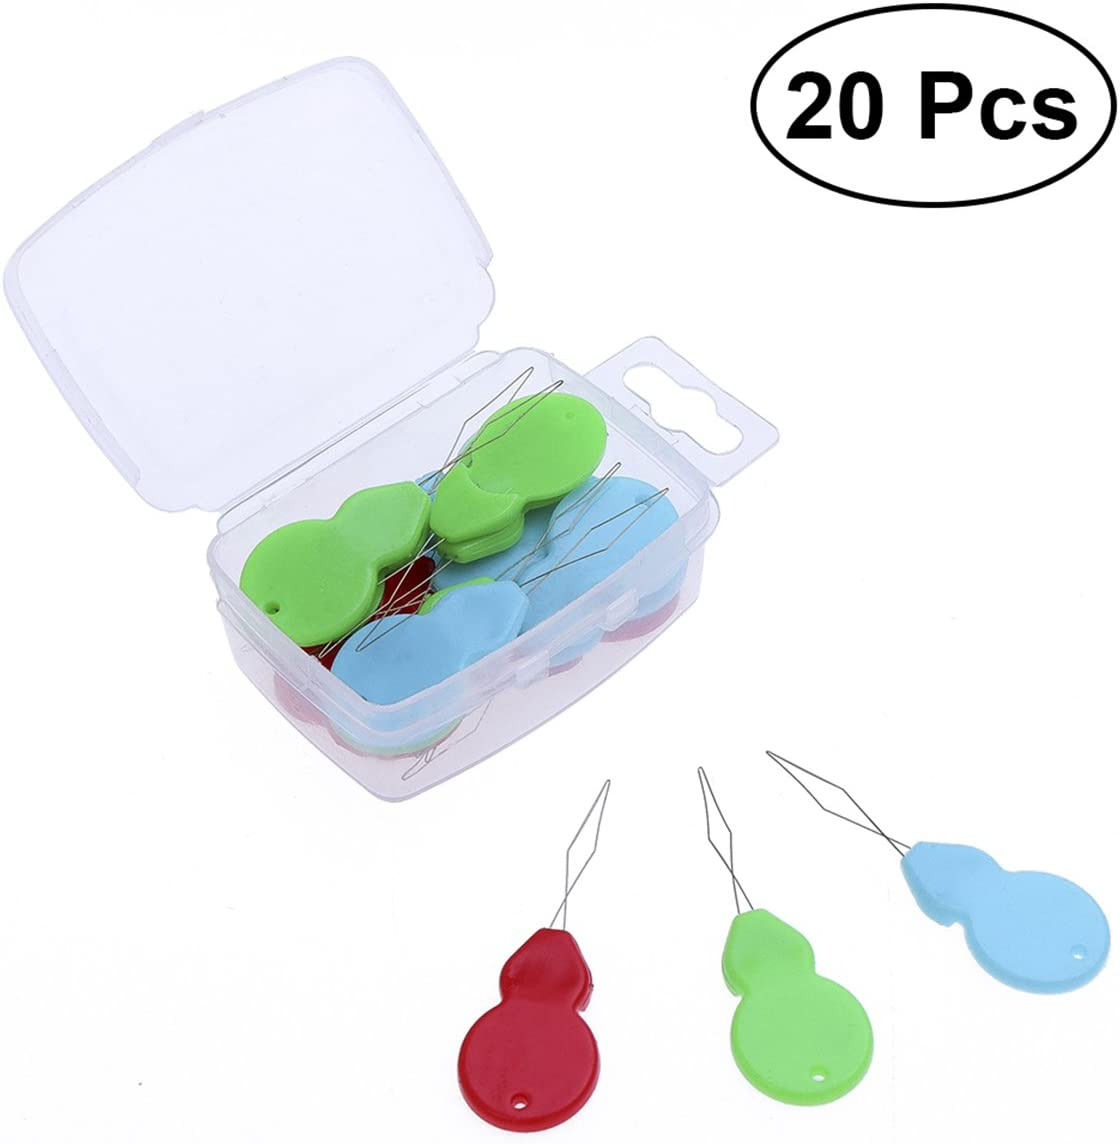 ultnice Needle Threader Hand Sewing 20pcs Threader with Plastic Transparent Box for Sewing Craft Projects